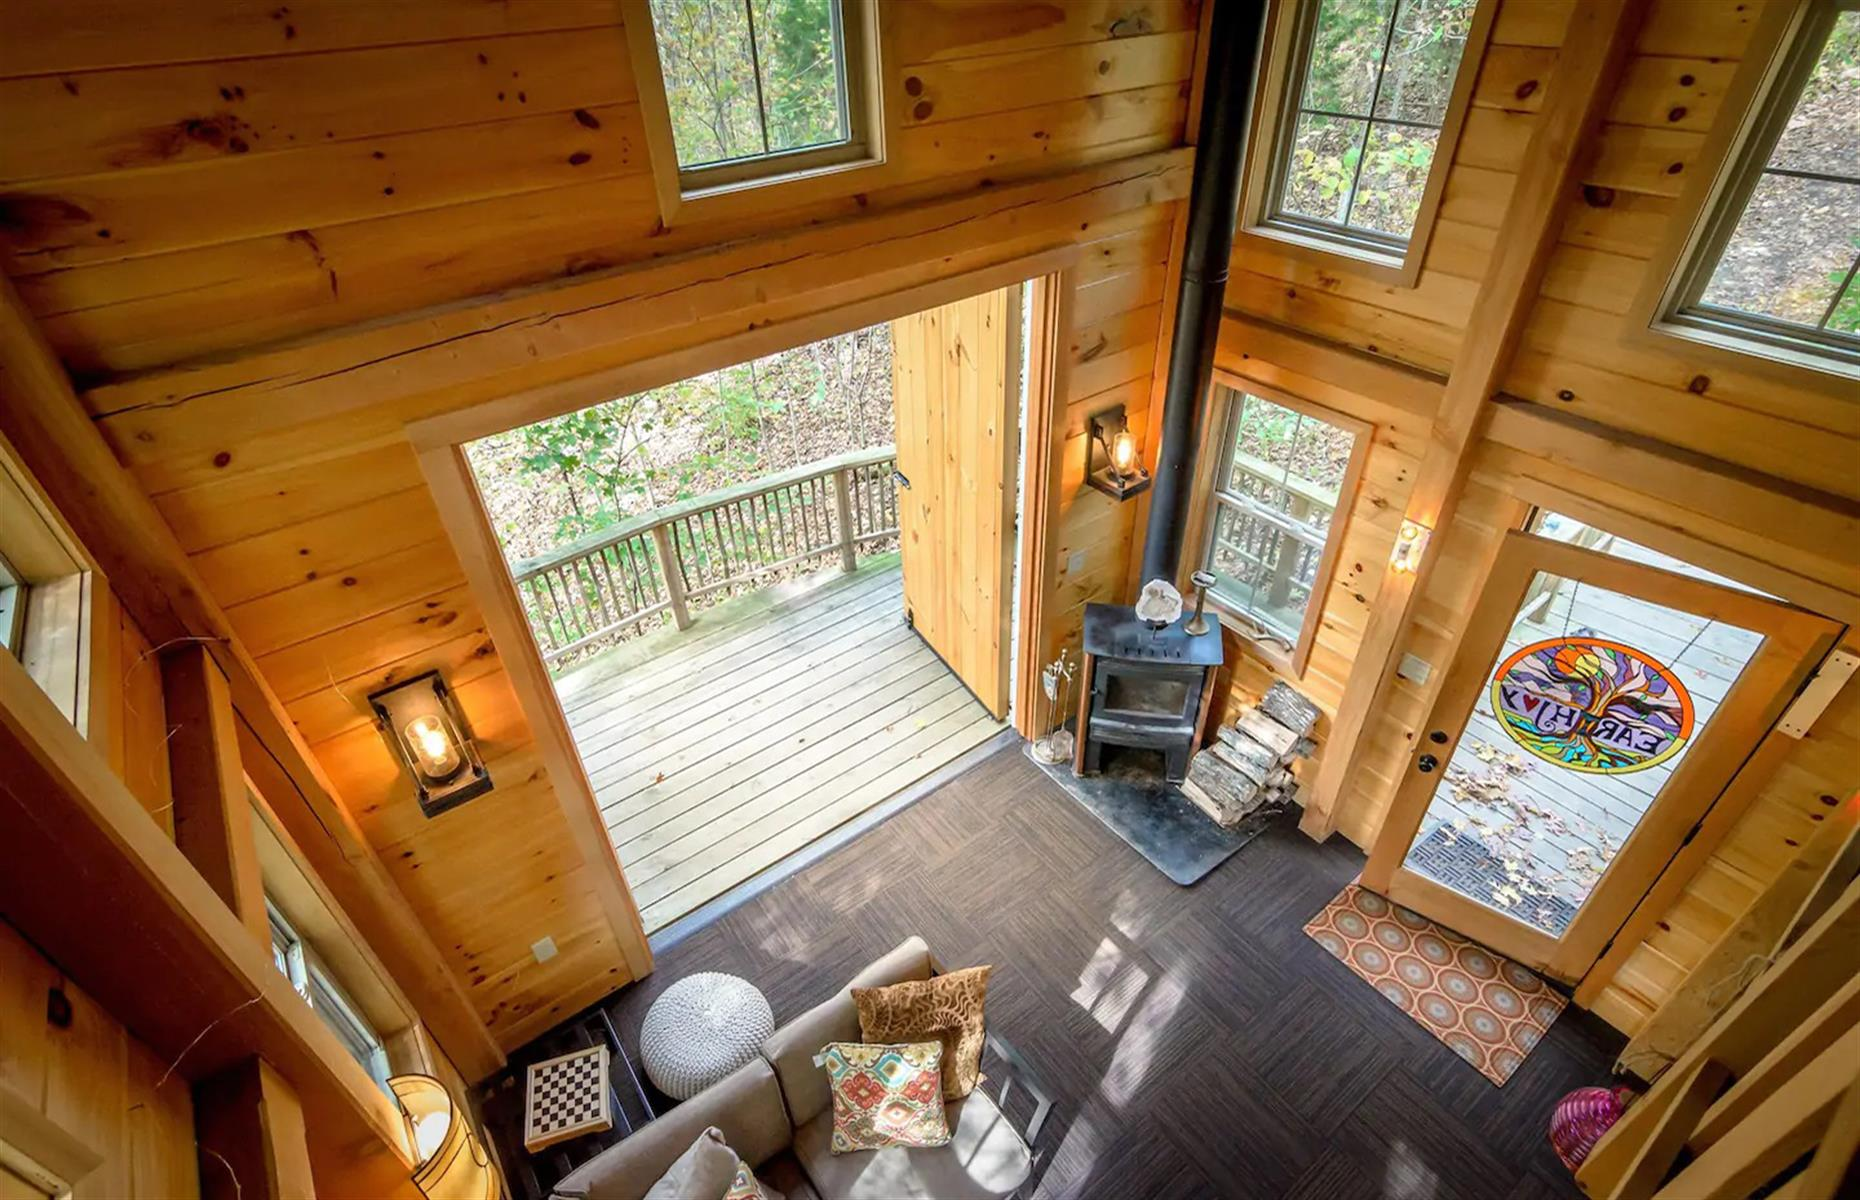 Slide 19 of 52: For an off-grid experience, book an escape at this remote treehouse in rural Kentucky. It has all the amenities guests might need during a stay at this rustic haven. It may be tempting to hunker down but make sure to explore the gorgeous surrounding area – it's great for trekking, hiking and horseback riding. The towns of Augusta and Maysville are also nearby.